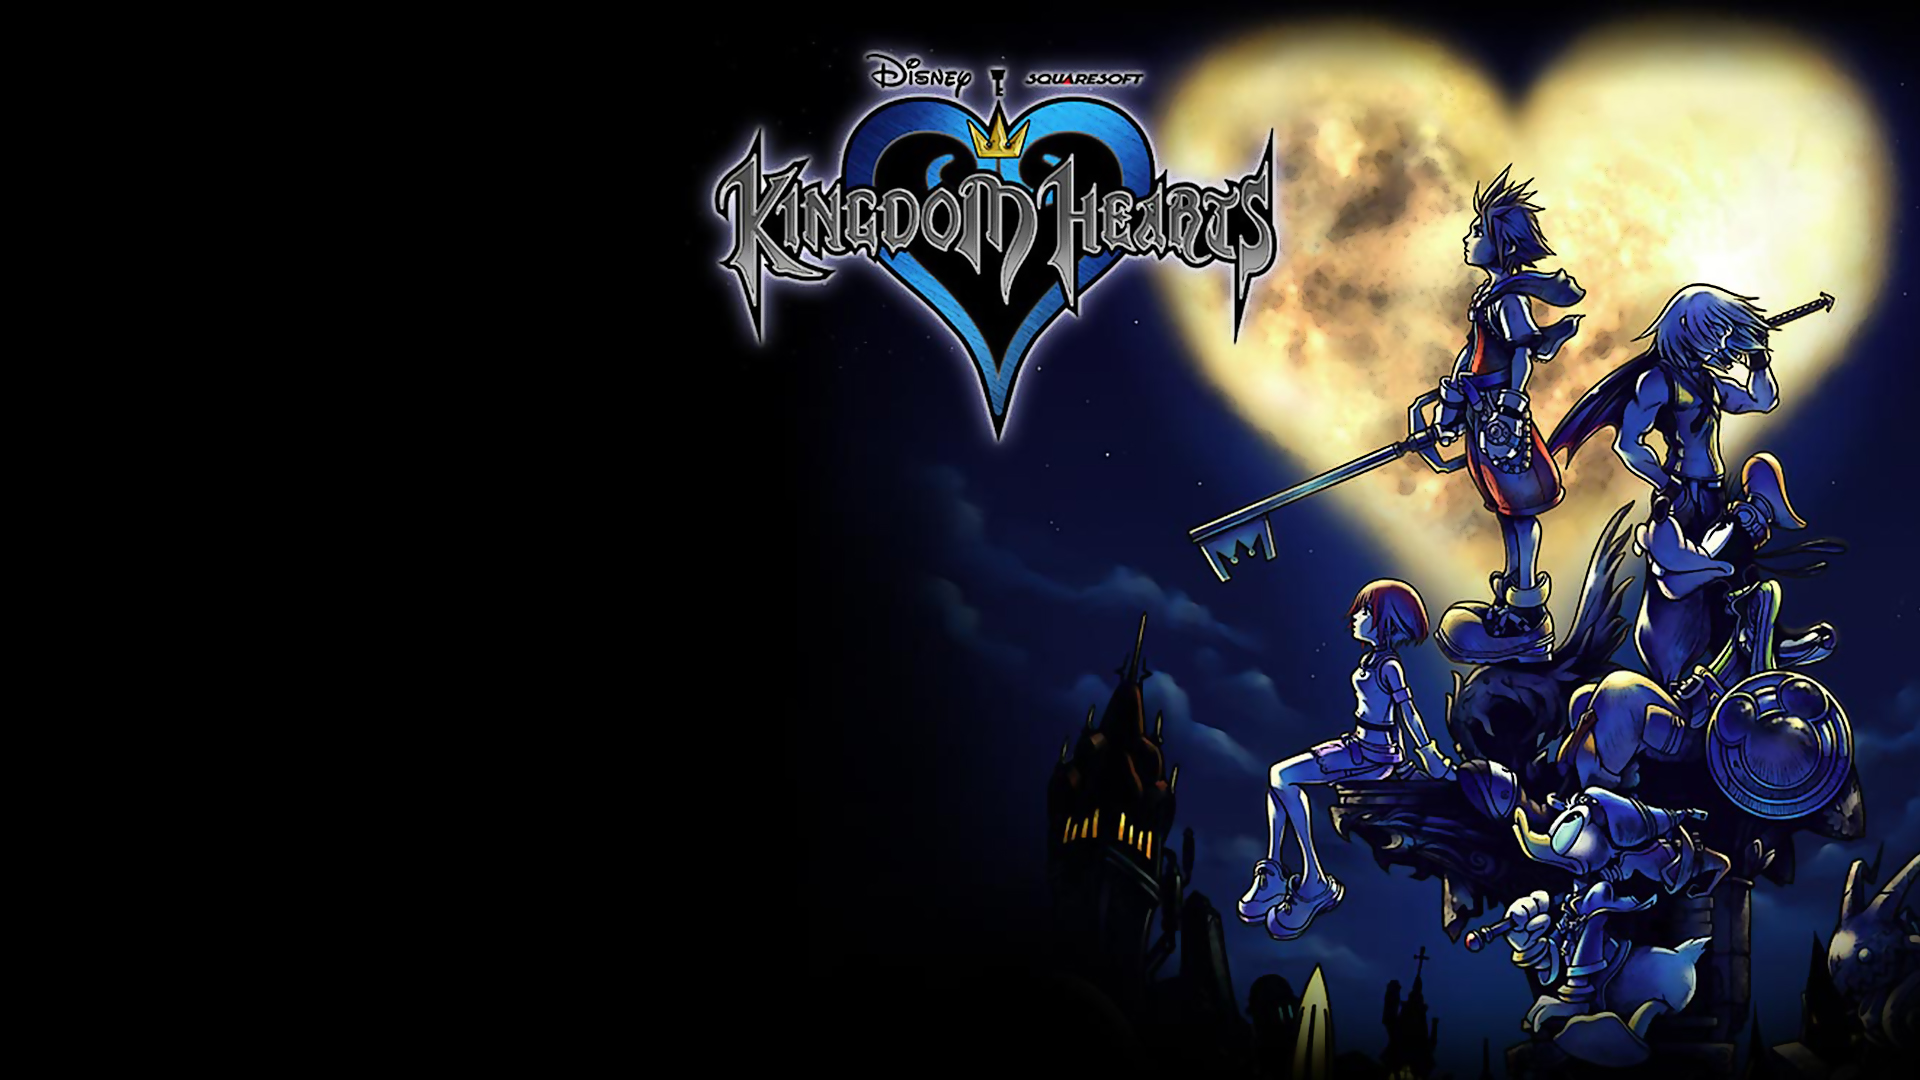 Download Kingdom Hearts Wallpaper 1920x1080 Wallpoper 1920x1080